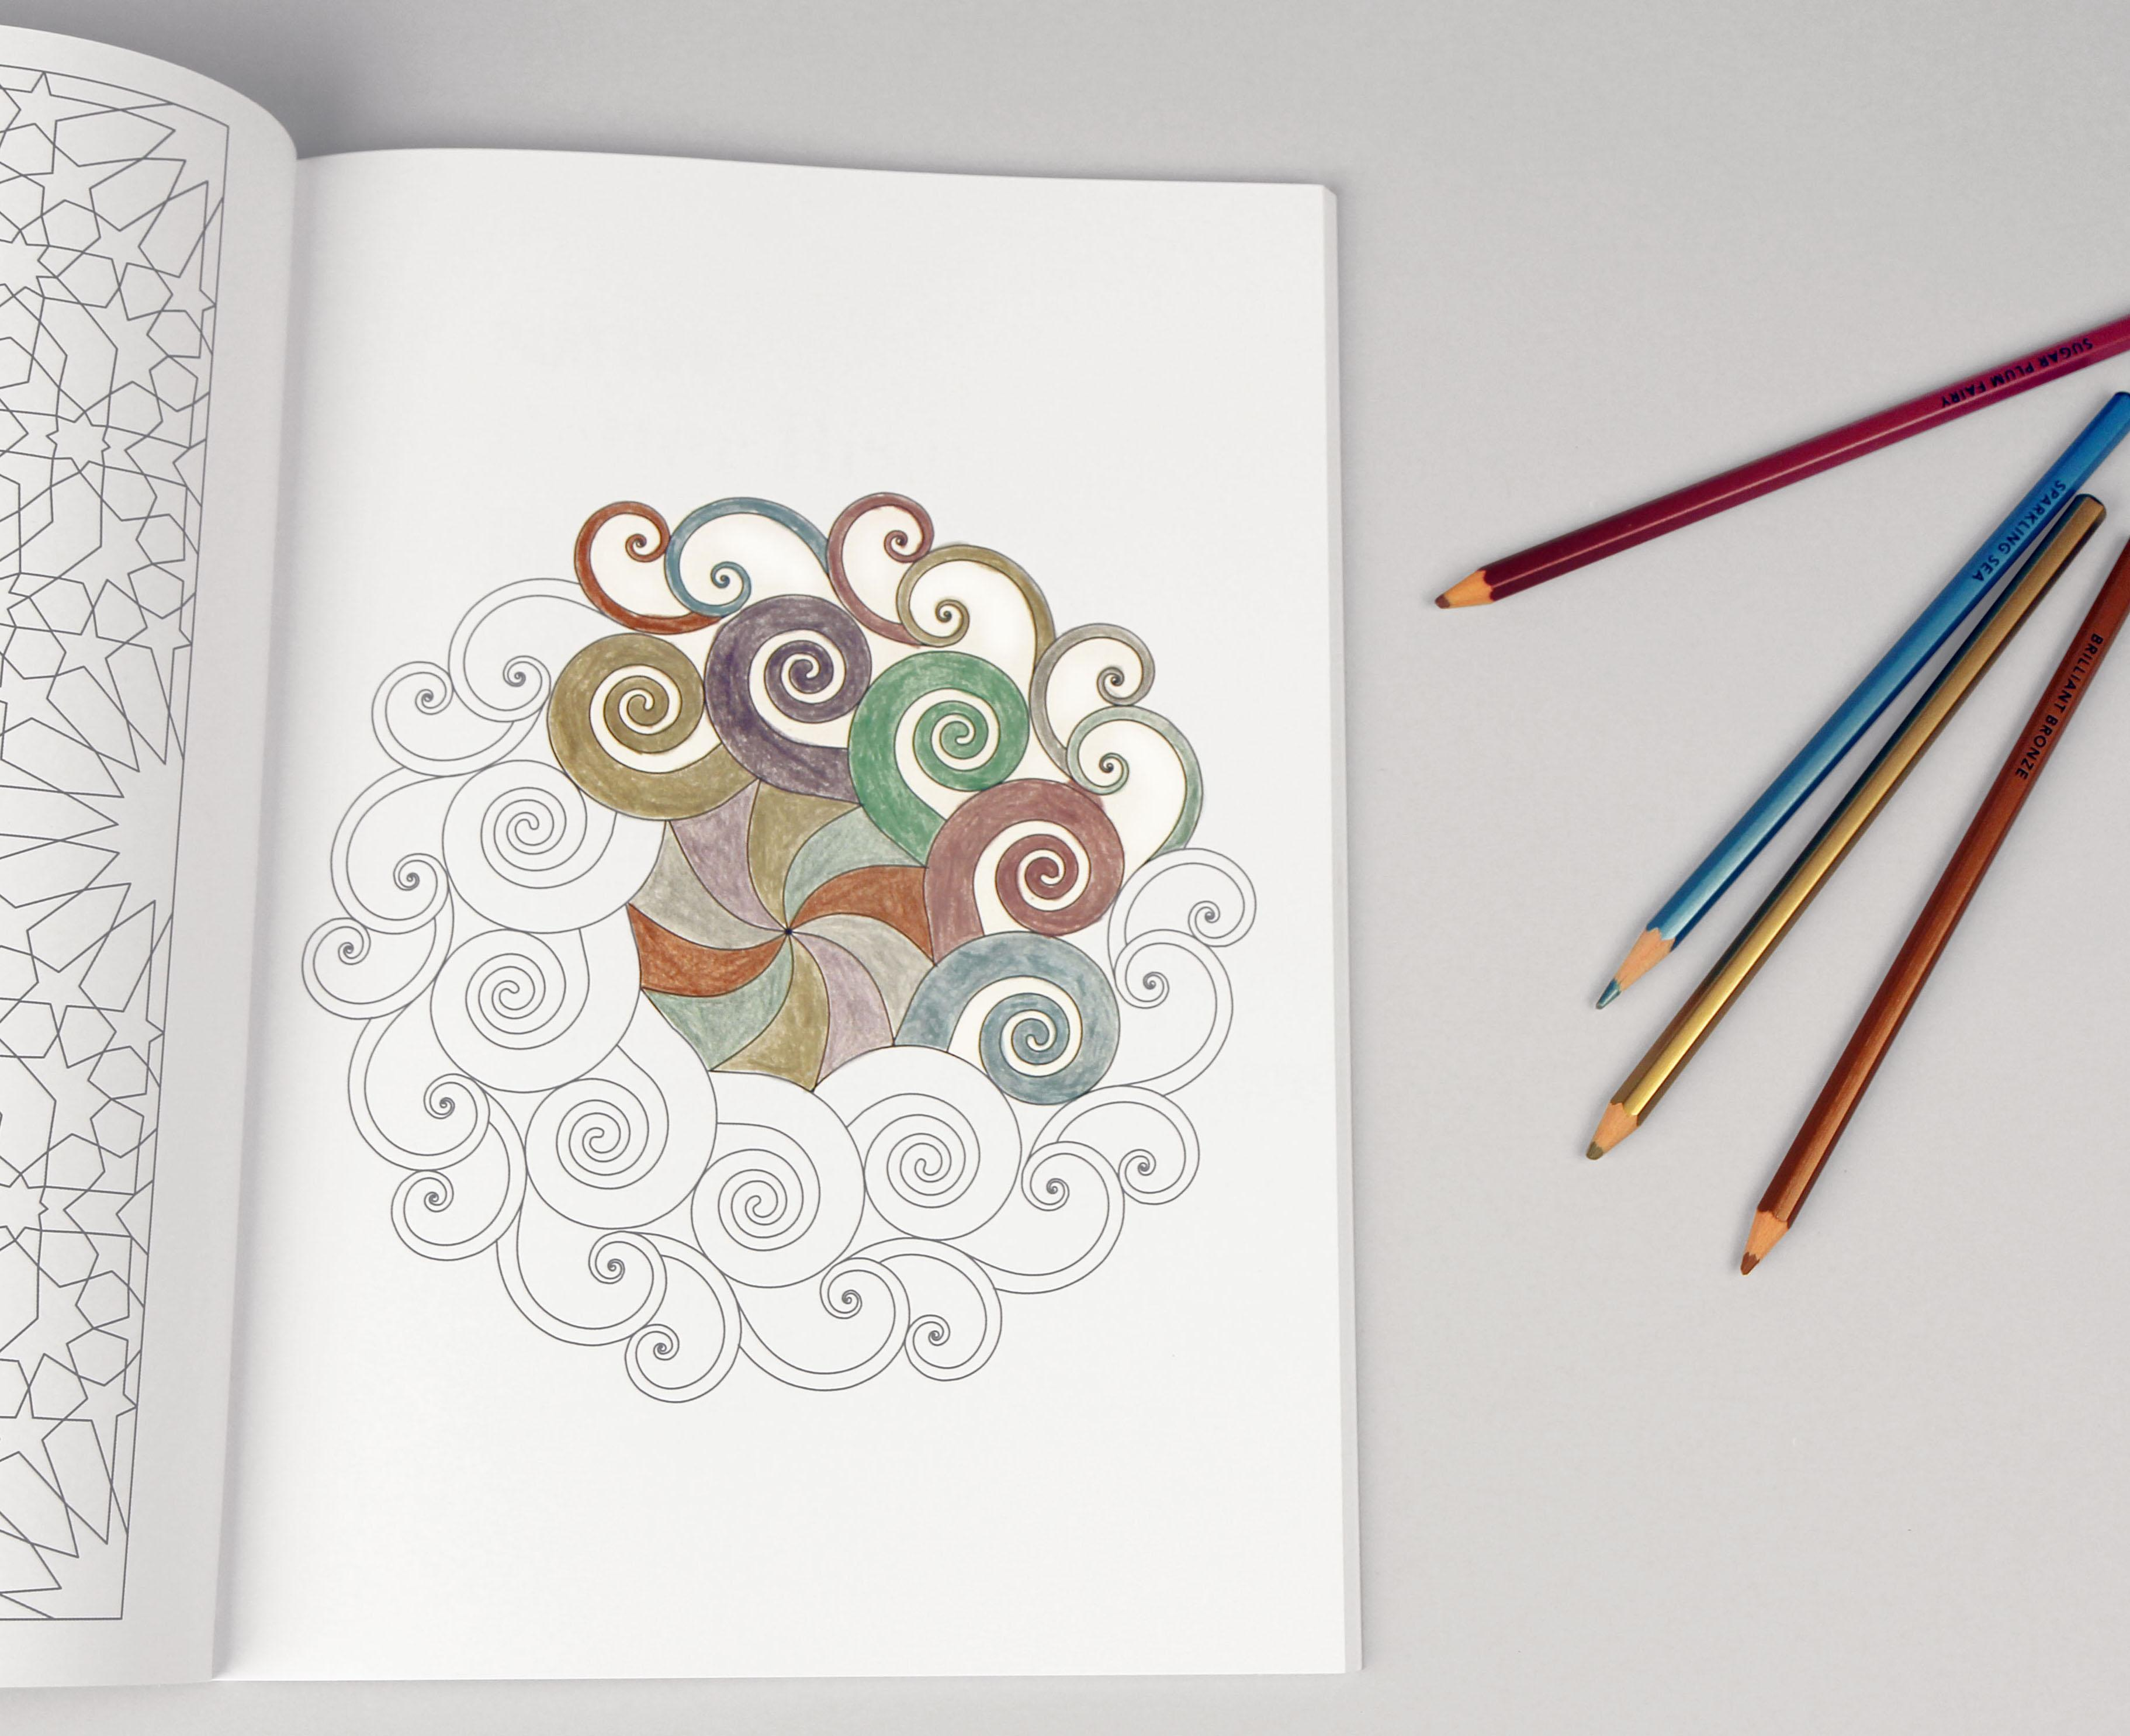 Modern Meditation Coloring Book with Bright Ideas Metallic Colored ...